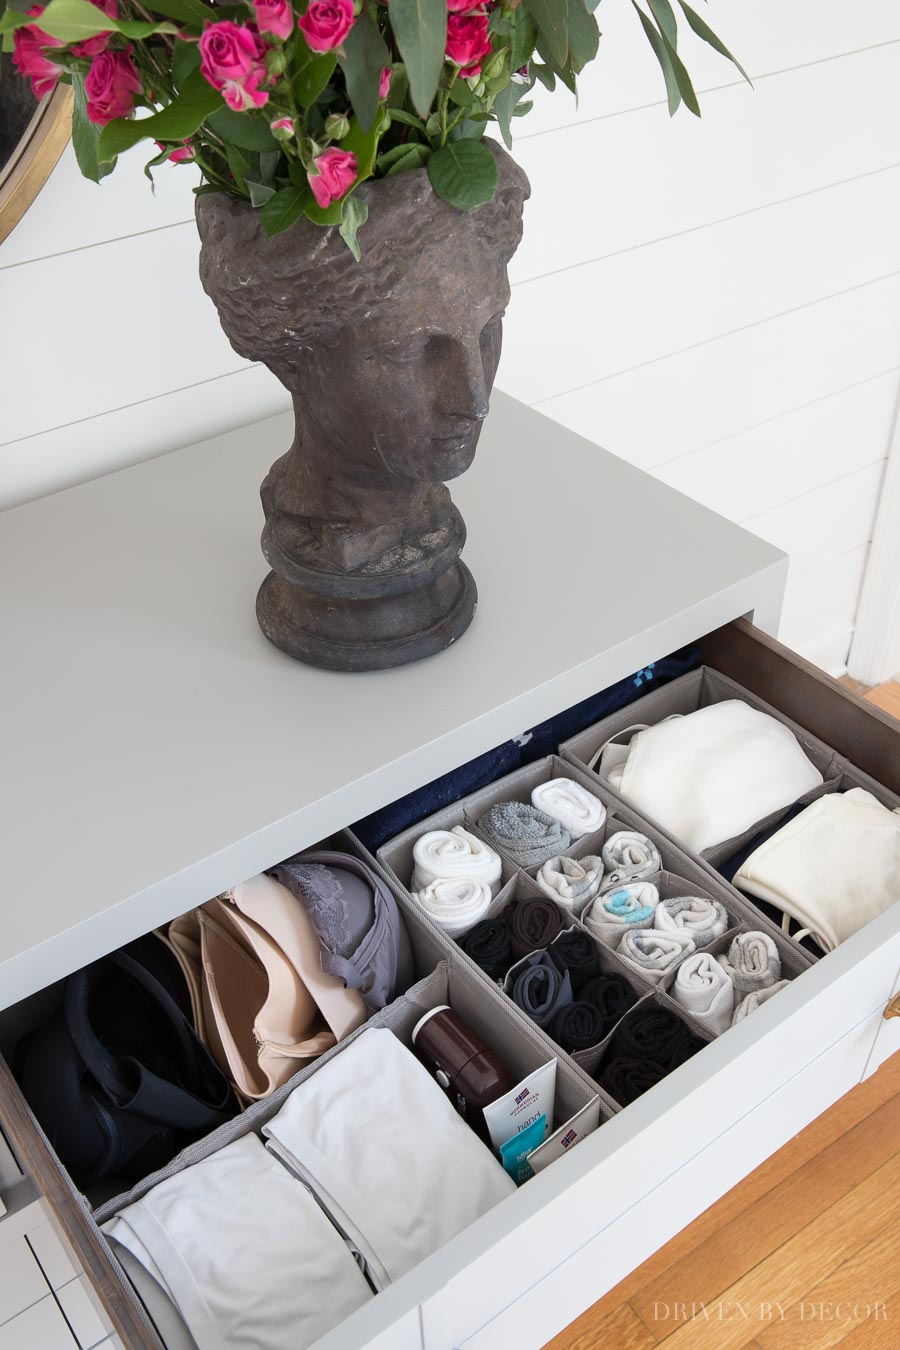 These fabric drawer dividers and organizers (for organizing socks, bras, & more) are awesome!